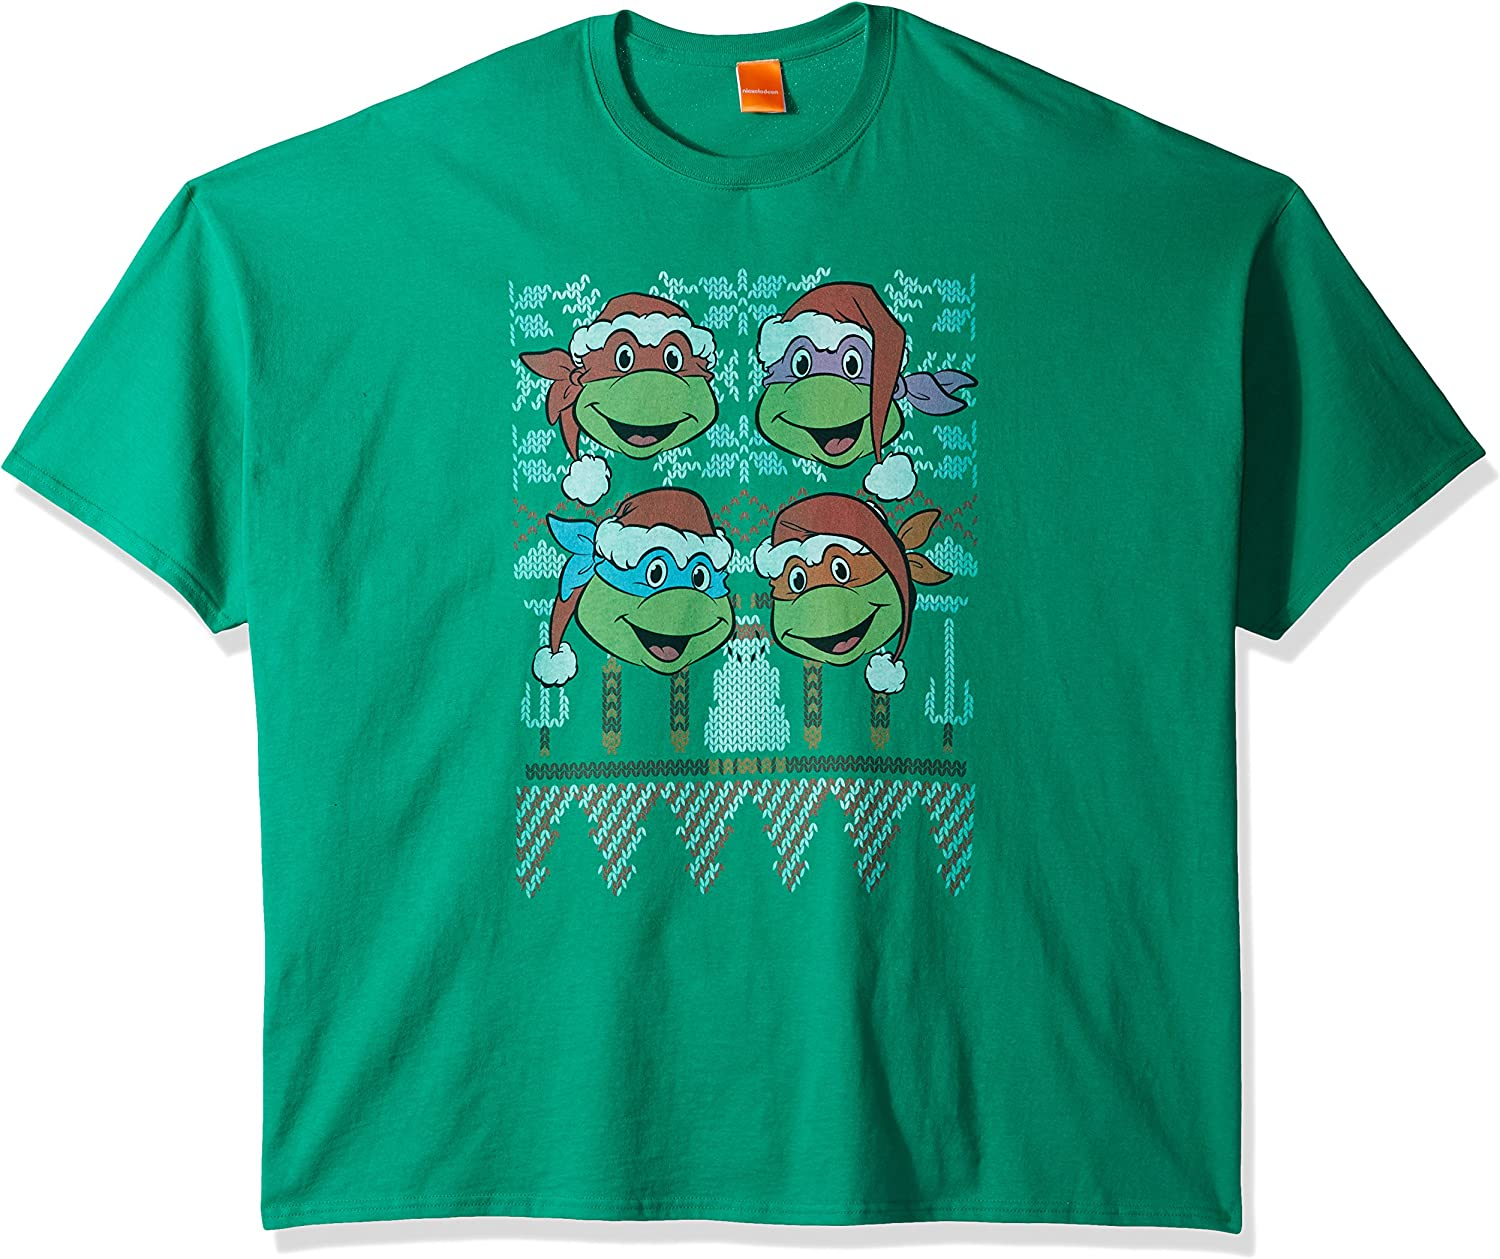 Officially Licensed TMNT Group Unisex Kids T-Shirt Ages 3-12 Years